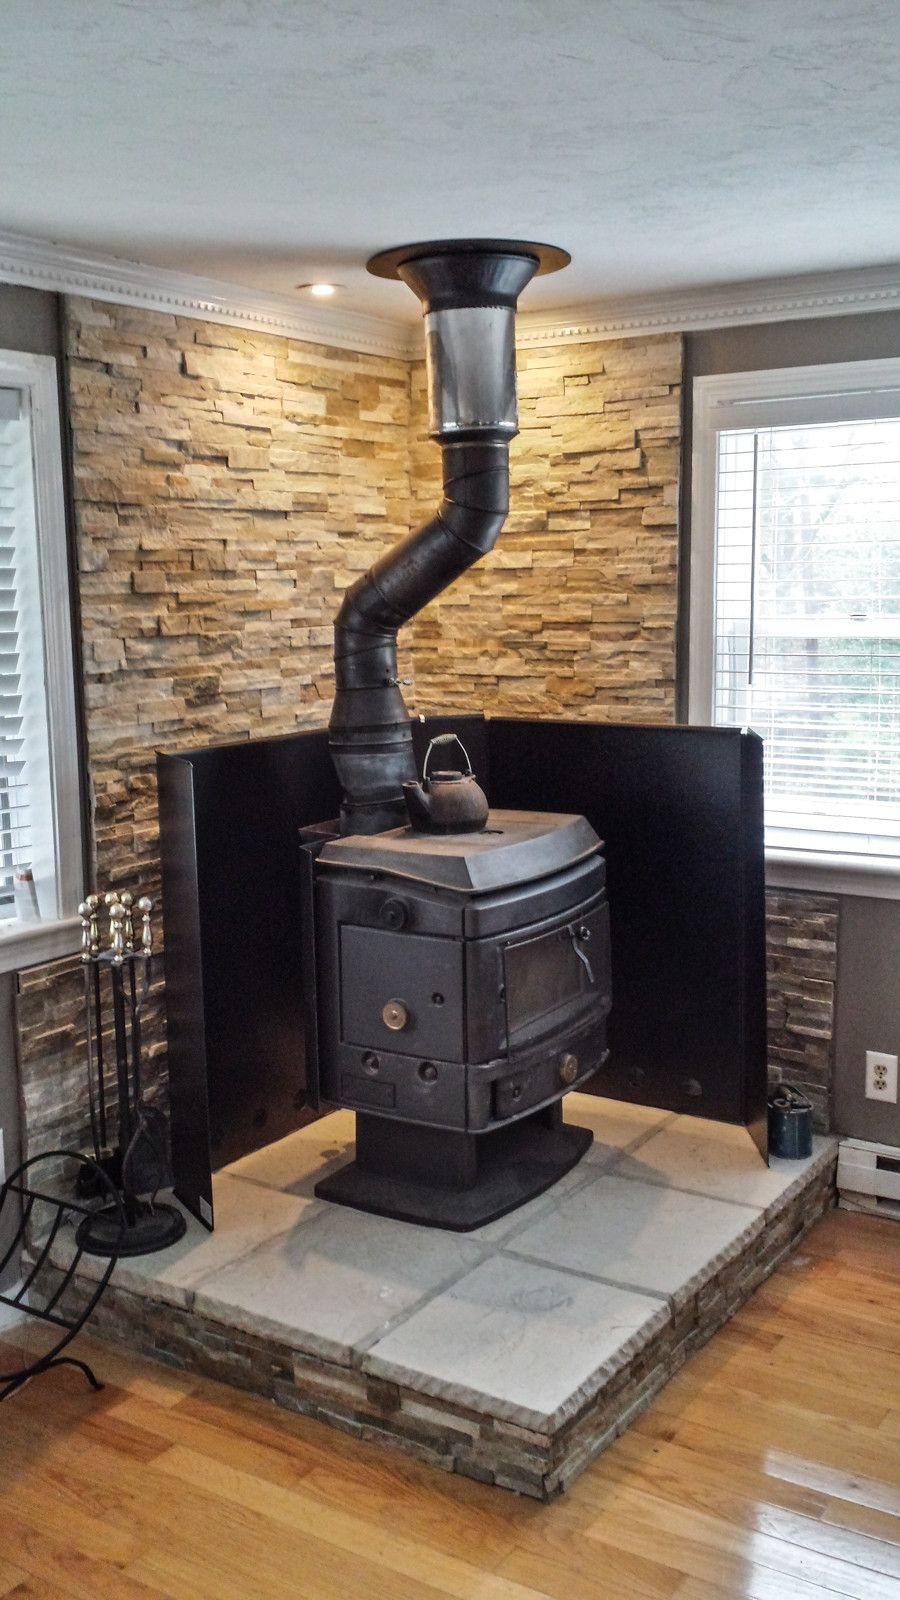 hight resolution of  09765b21872620977cd8332587c7b880 top wood burning stoves what are wood burning stove installation old furnace wiring diagram at